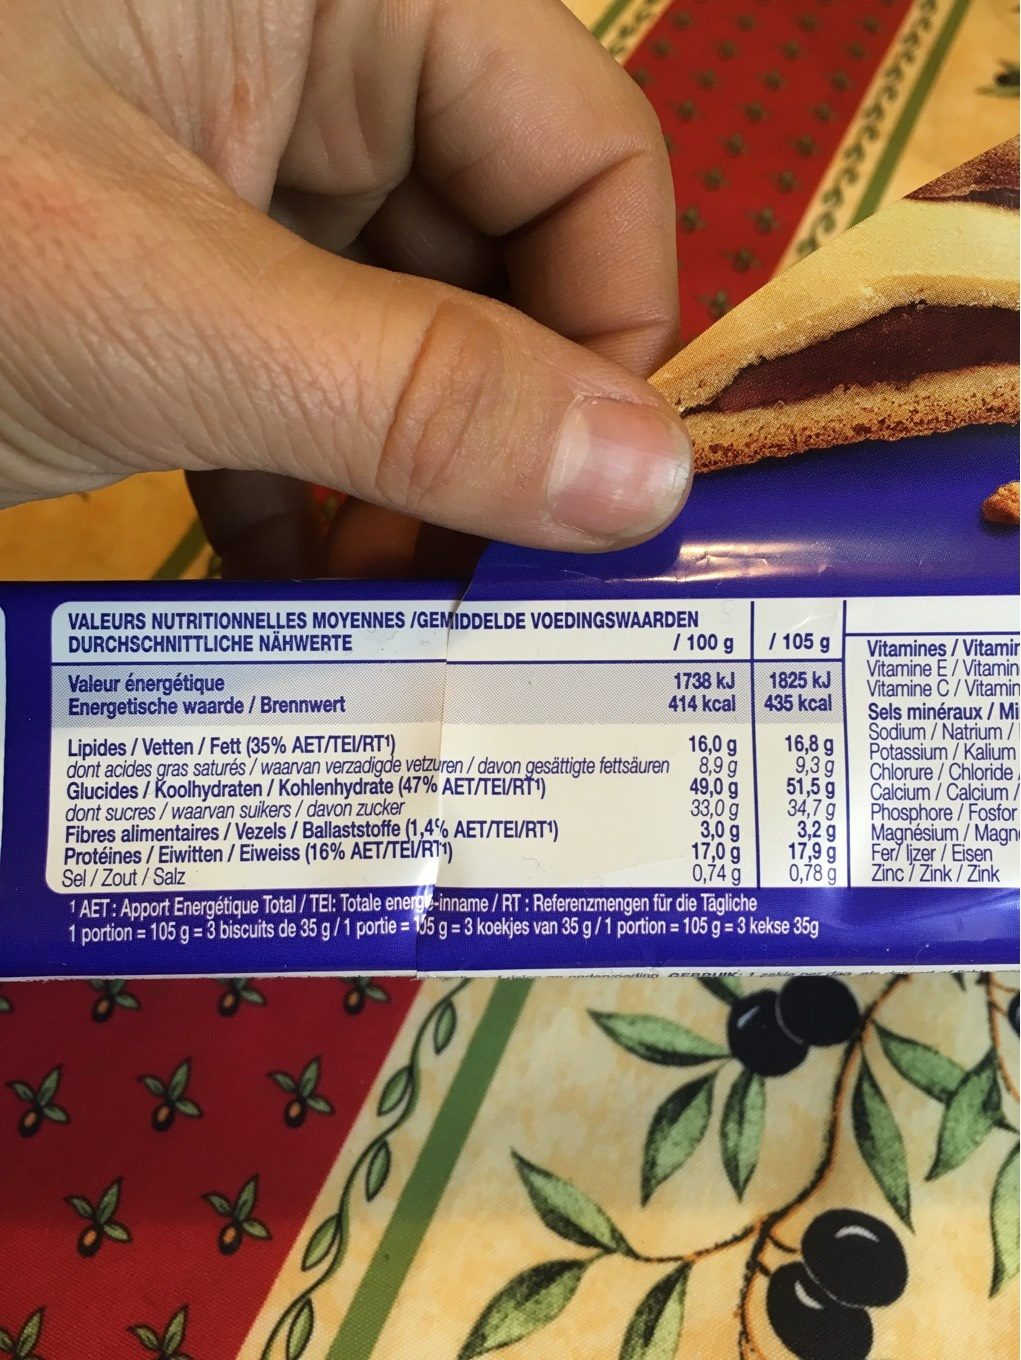 Nutra'cake chocolat - Informations nutritionnelles - fr